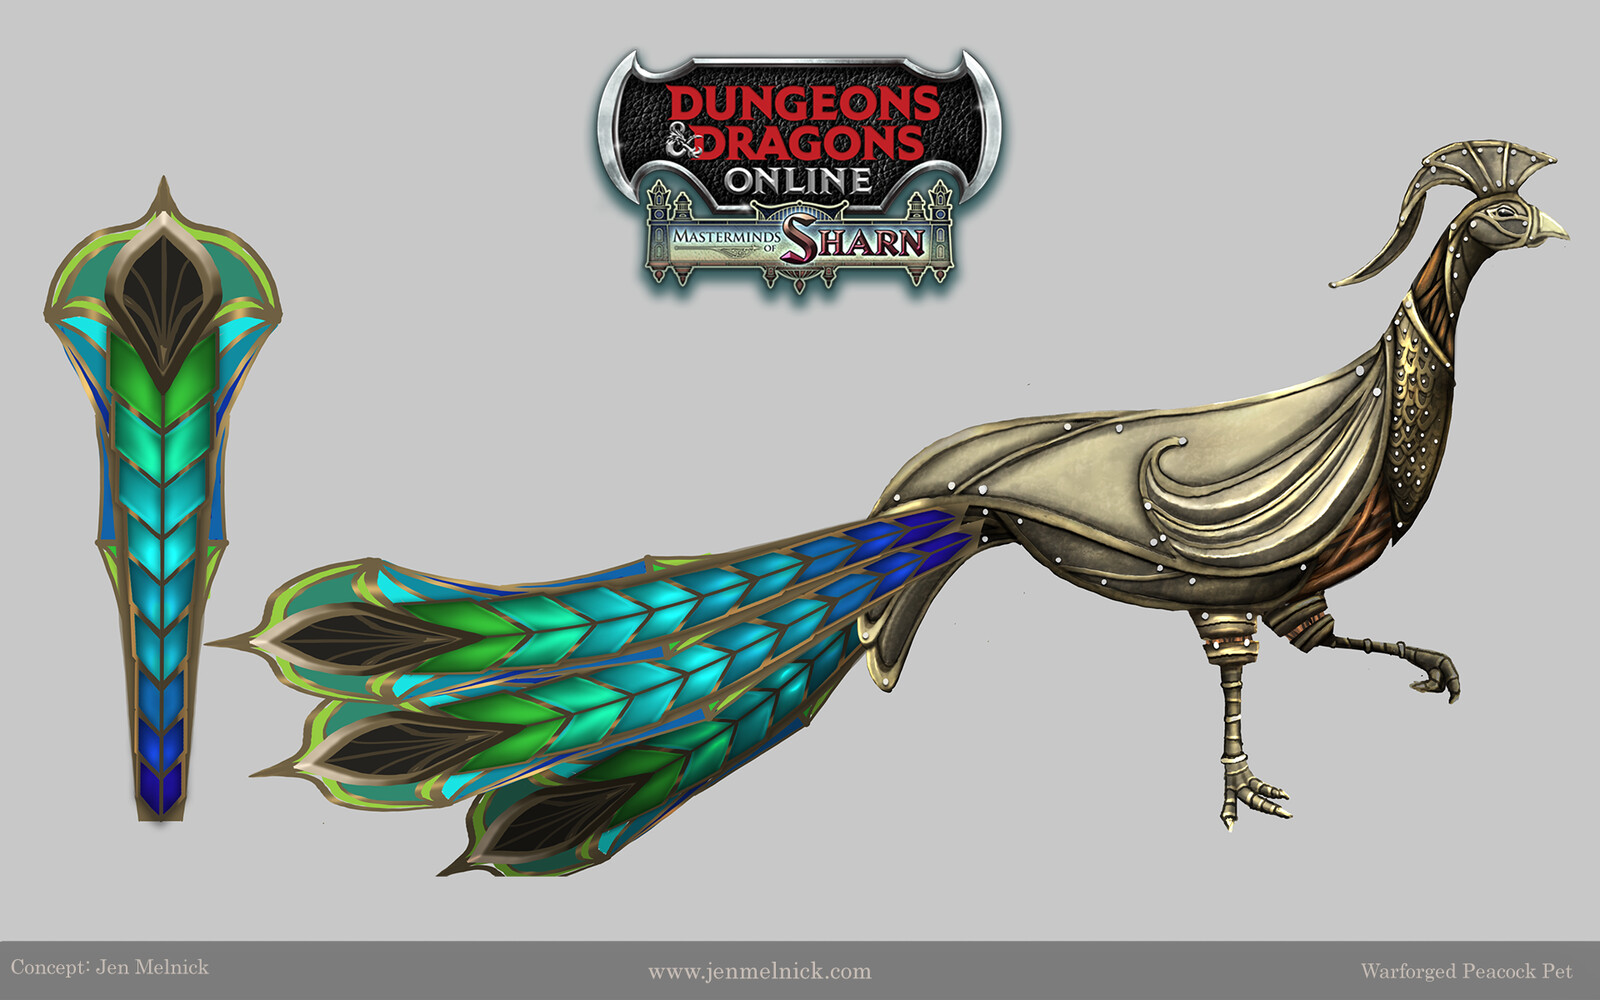 Warforged Peacock Pet Dungeons and Dragons Online Masterminds of Sharn Expansion  Ultimate Fan Bundle Pet Reward Concept